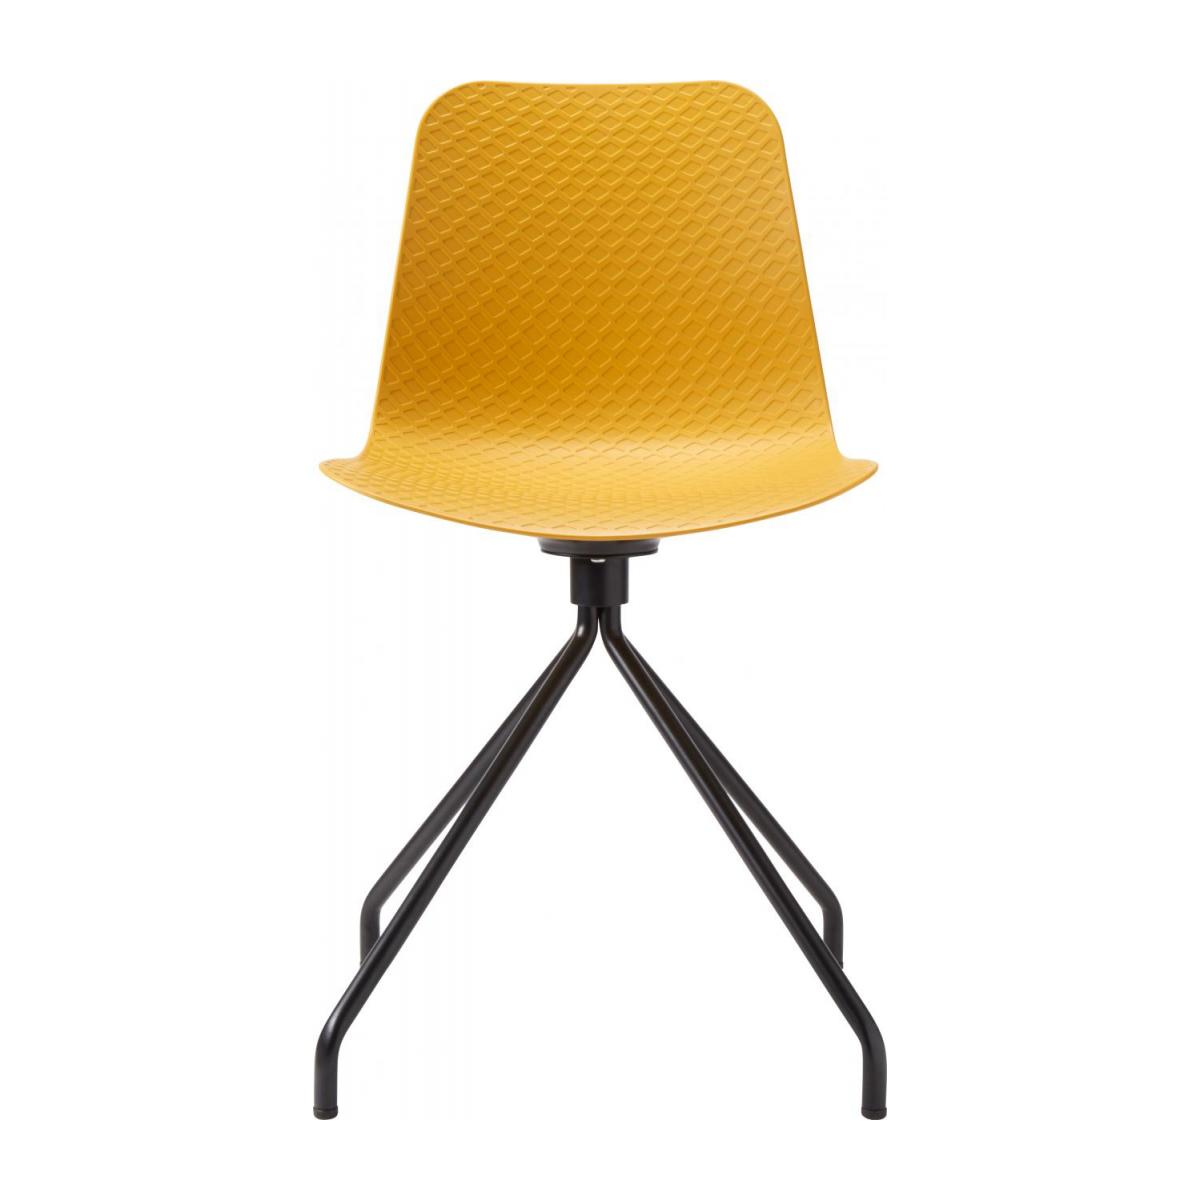 Yellow chair in polypropylene and lacquered steel legs n°3